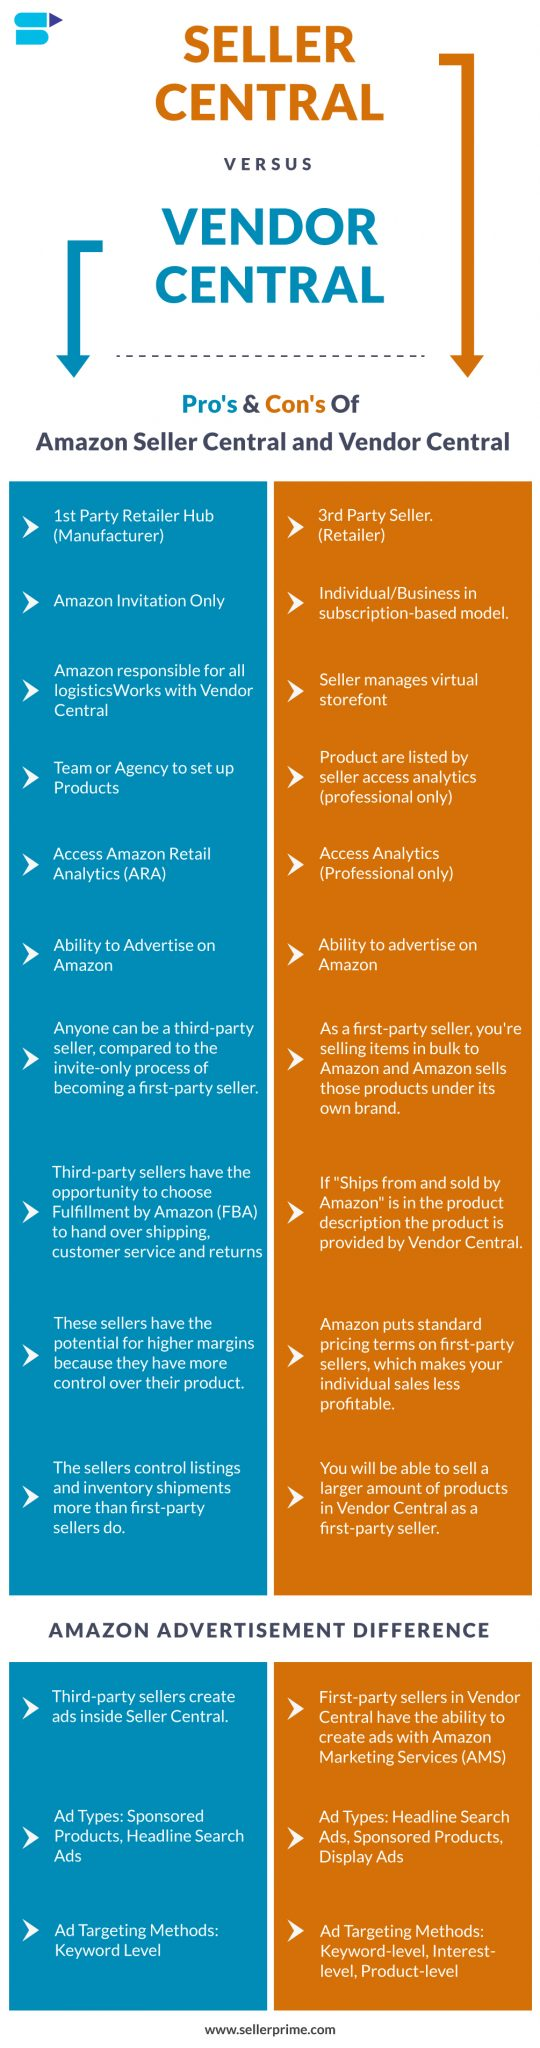 Amazon Seller Central Vs Vendor Central Difference Info-graphics